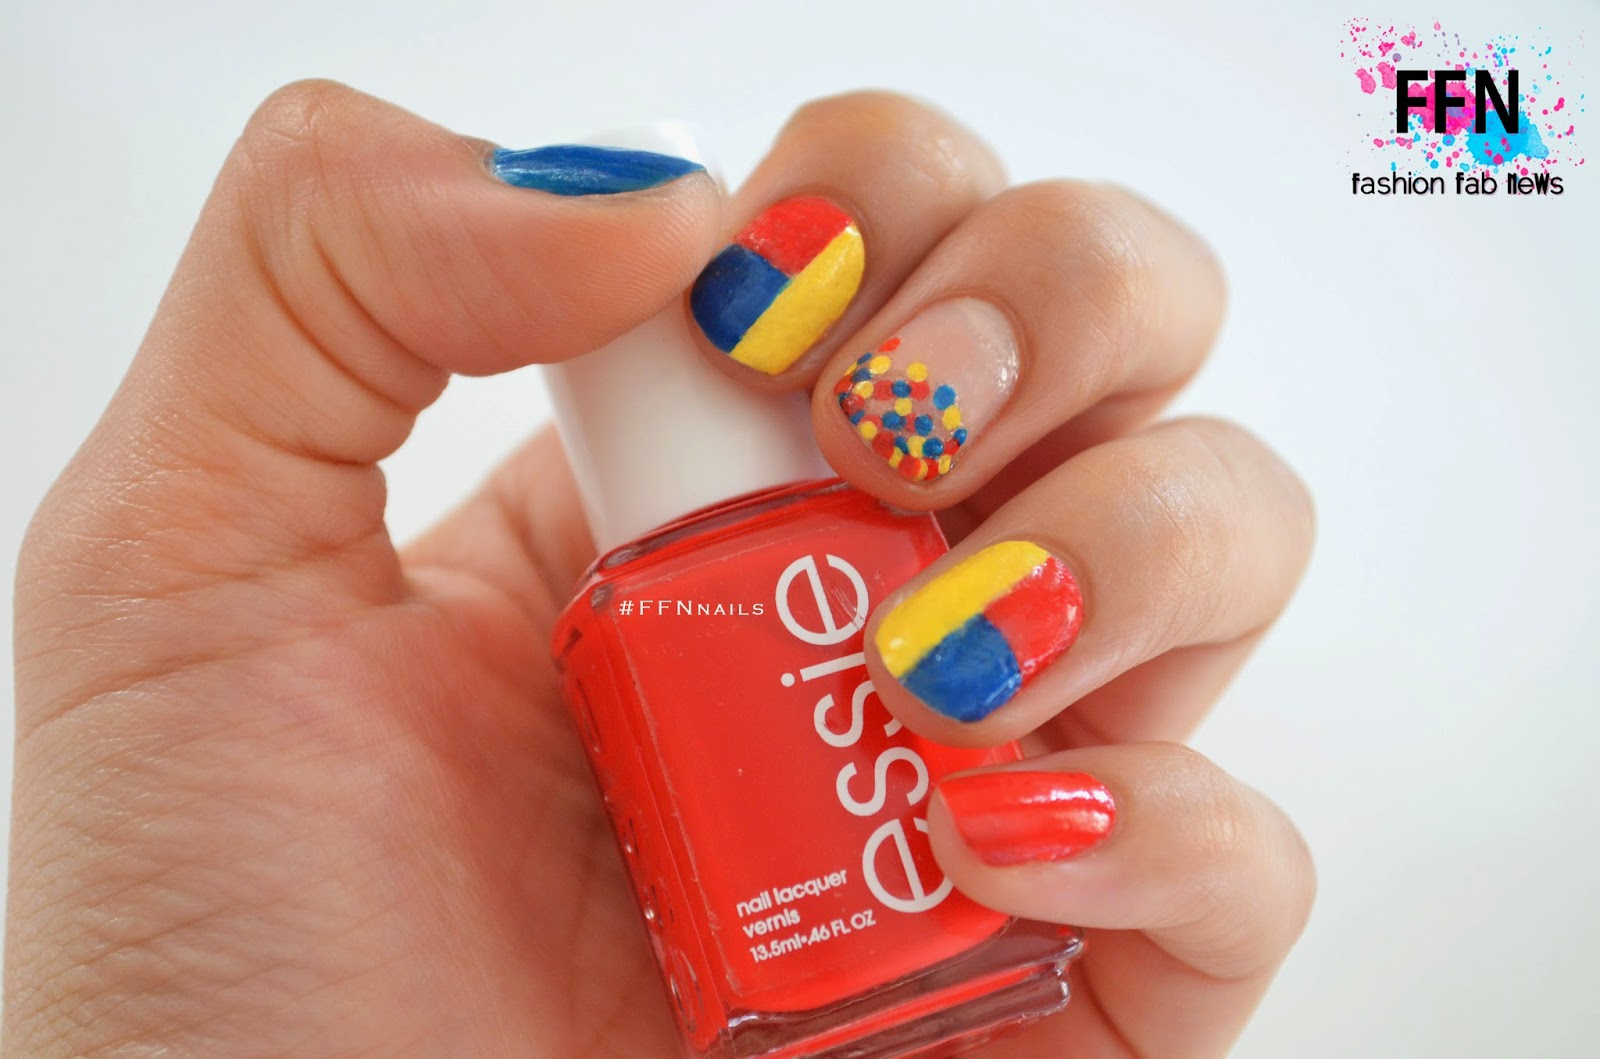 Colombia Independence S Day Nail Art Fashion Fab News Beauty Celebrities Designers